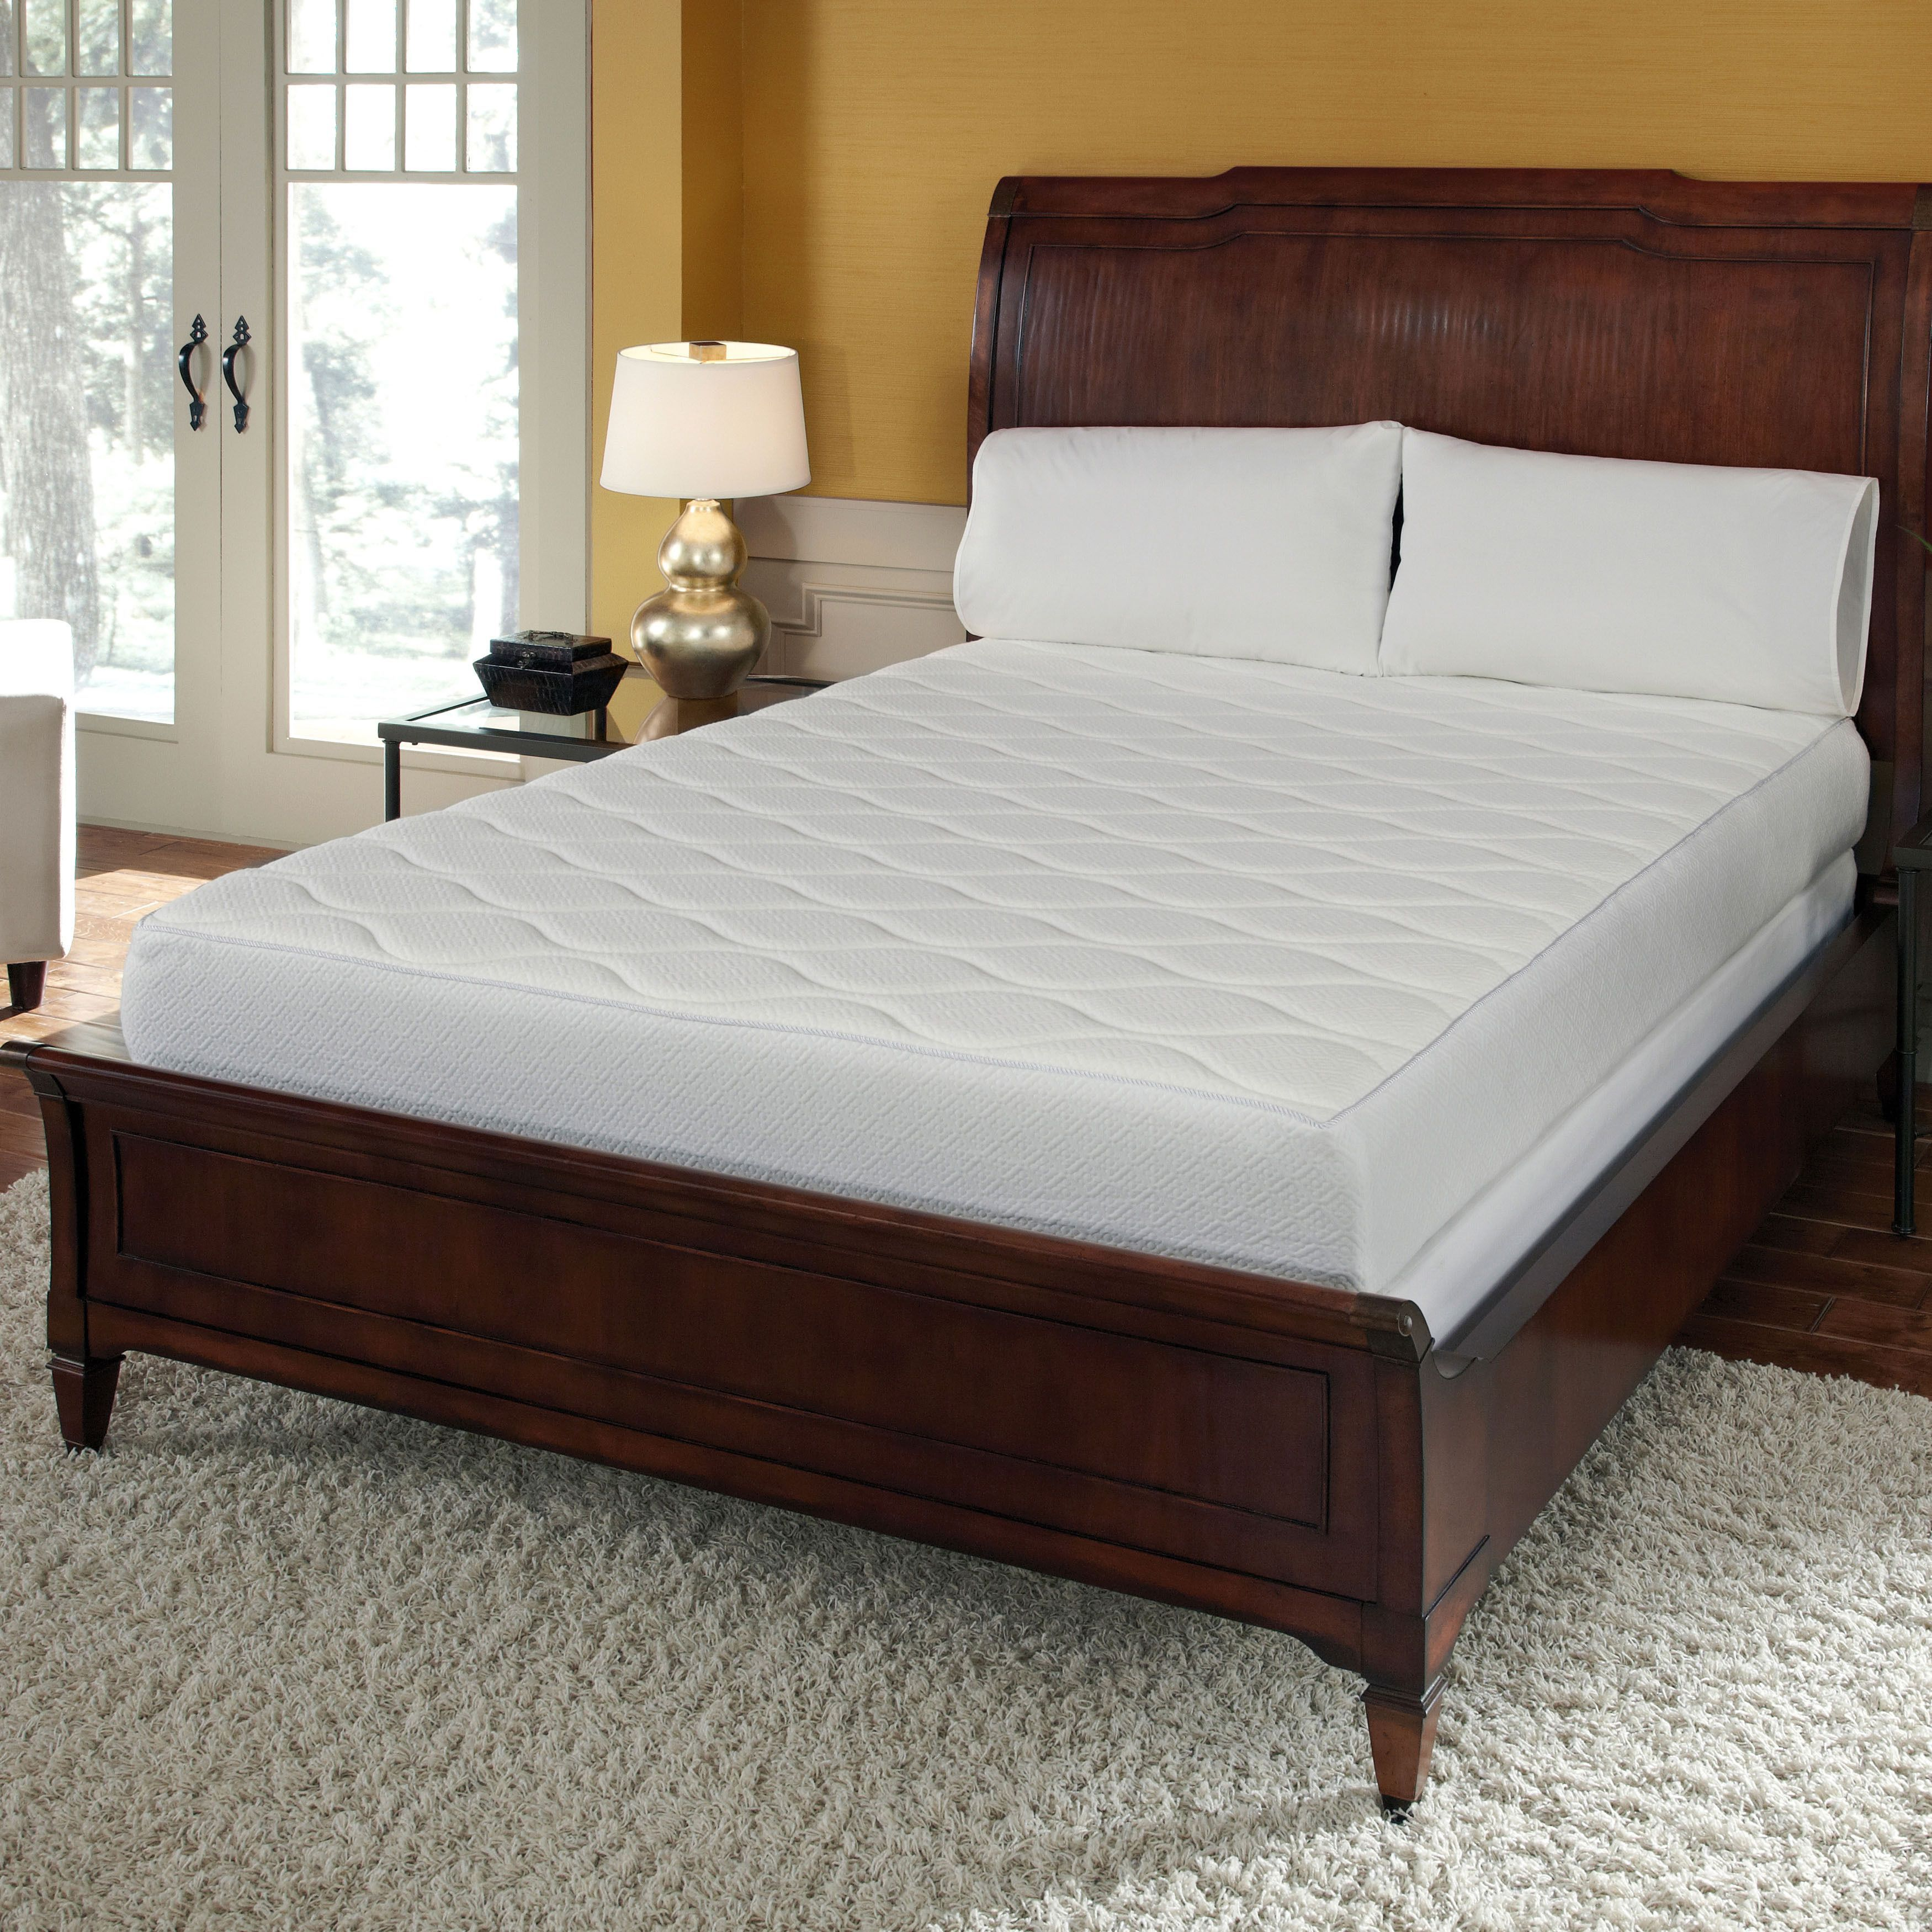 Youre Sure To Get A Good Nights Sleep With This Full Size Quilted Memory Foam Mattress Its High Resistance Temperature Sensitive Thats Resistant